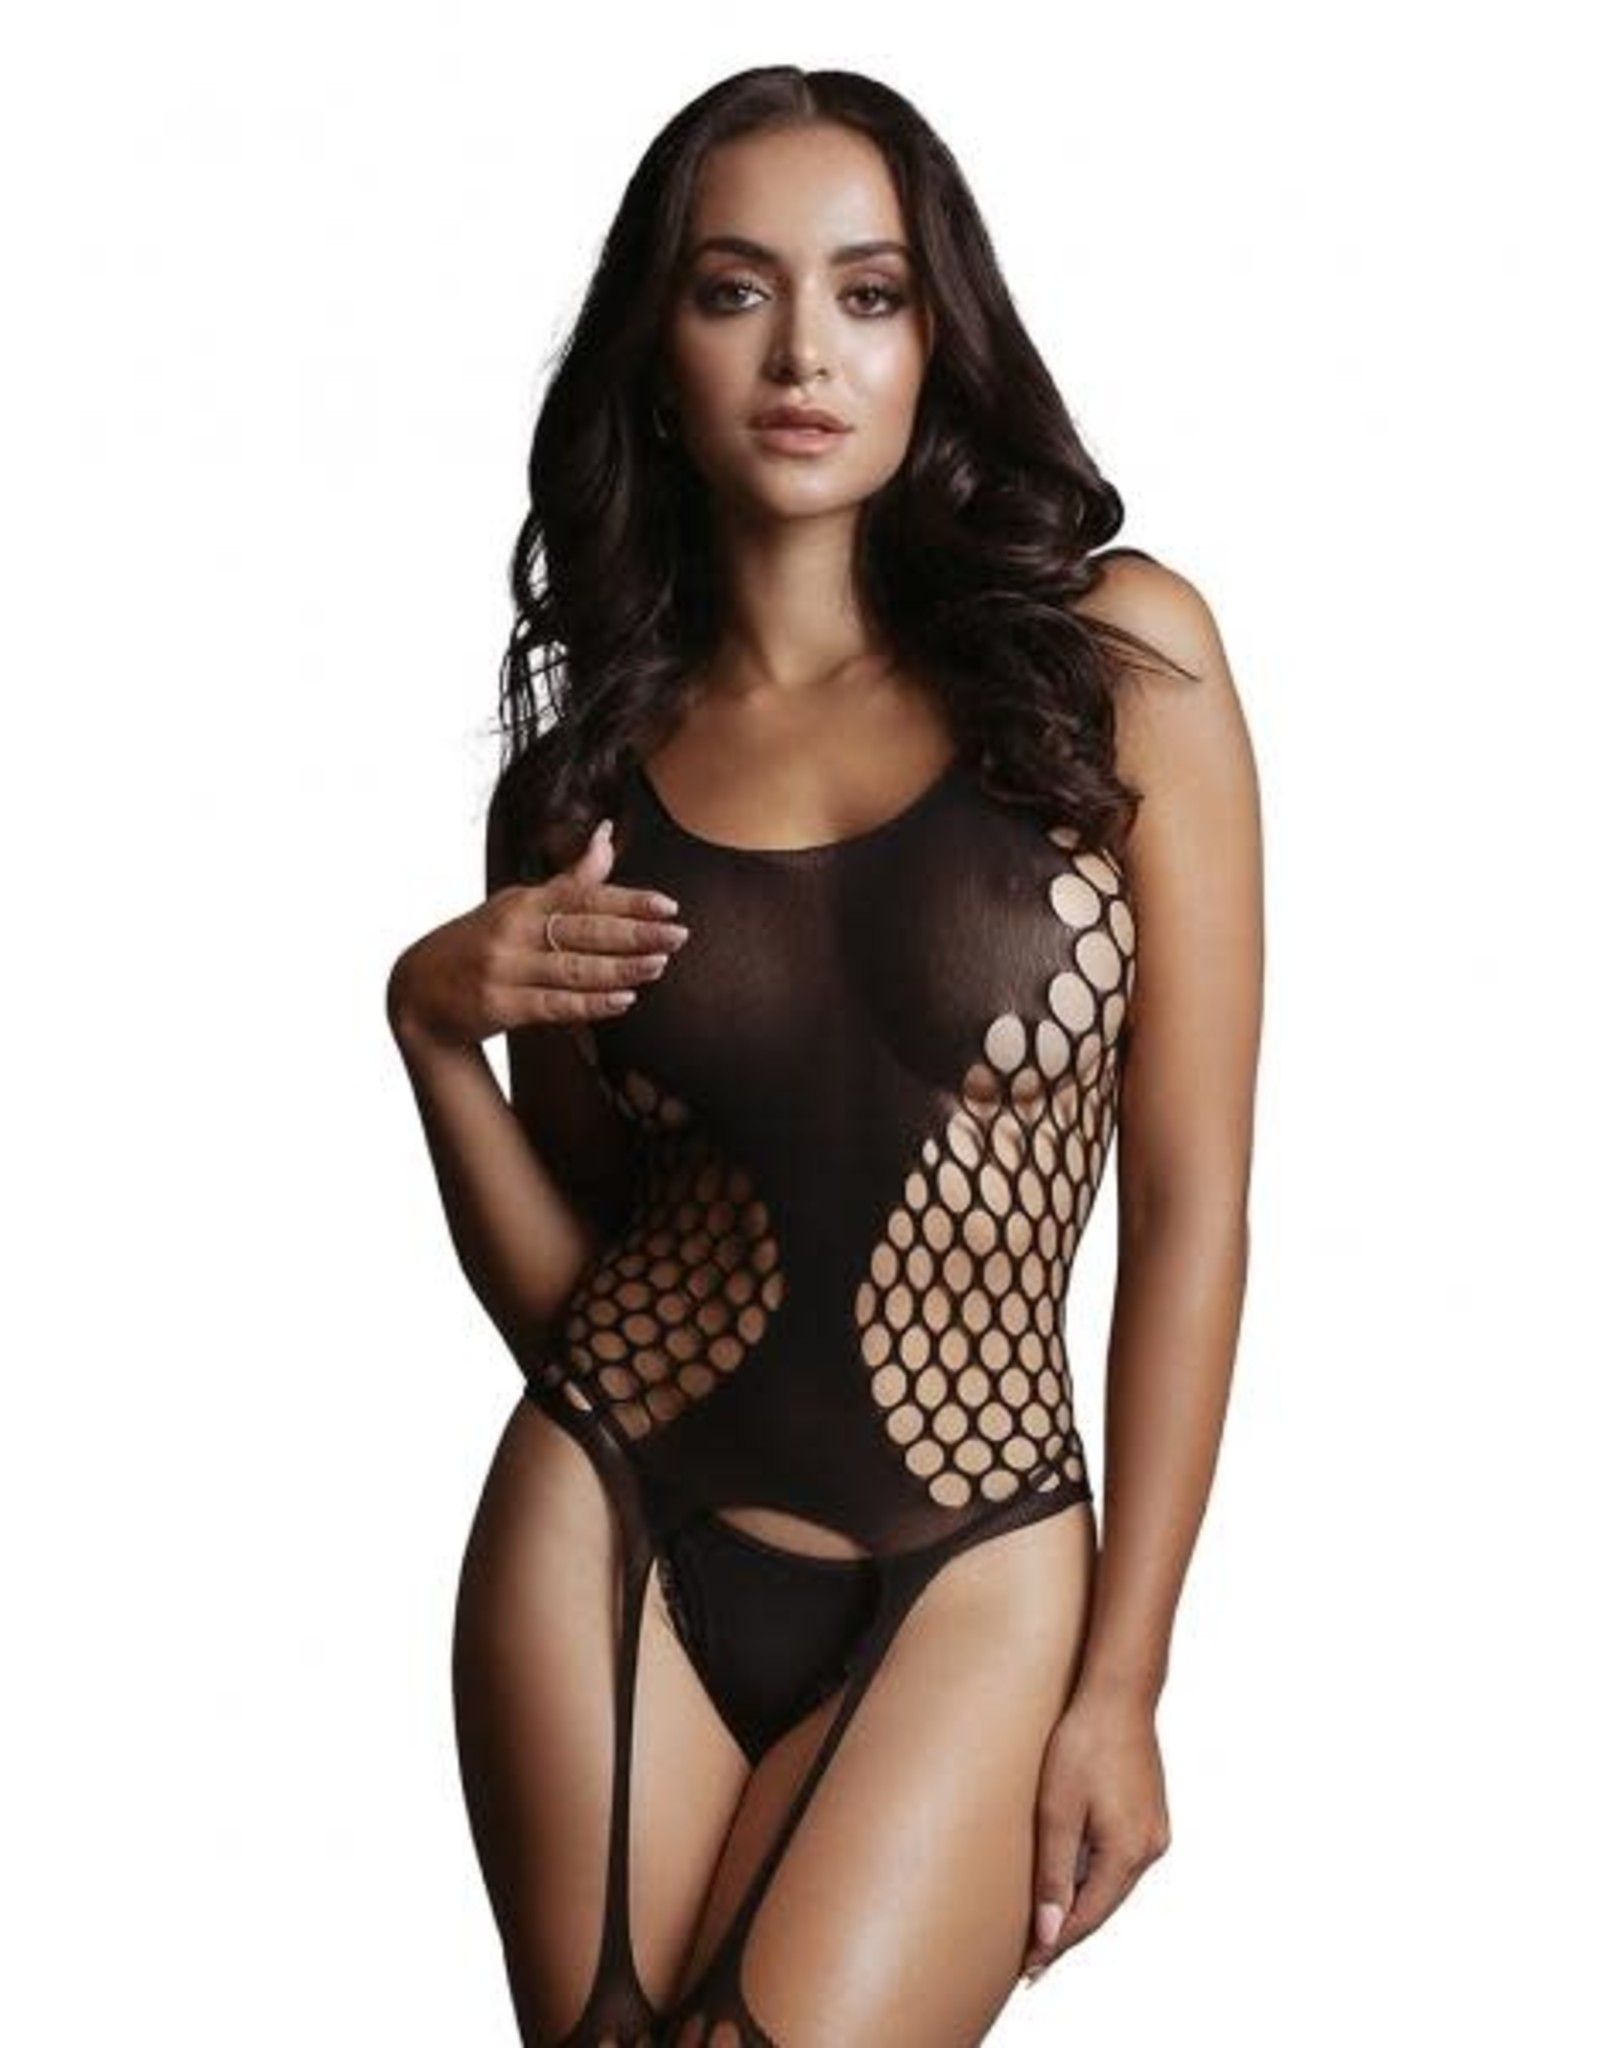 LE DESIR LINGERIE LE DESIR - FENCE SUSPENDER BODYSTOCKING - BLACK - ONE SIZE